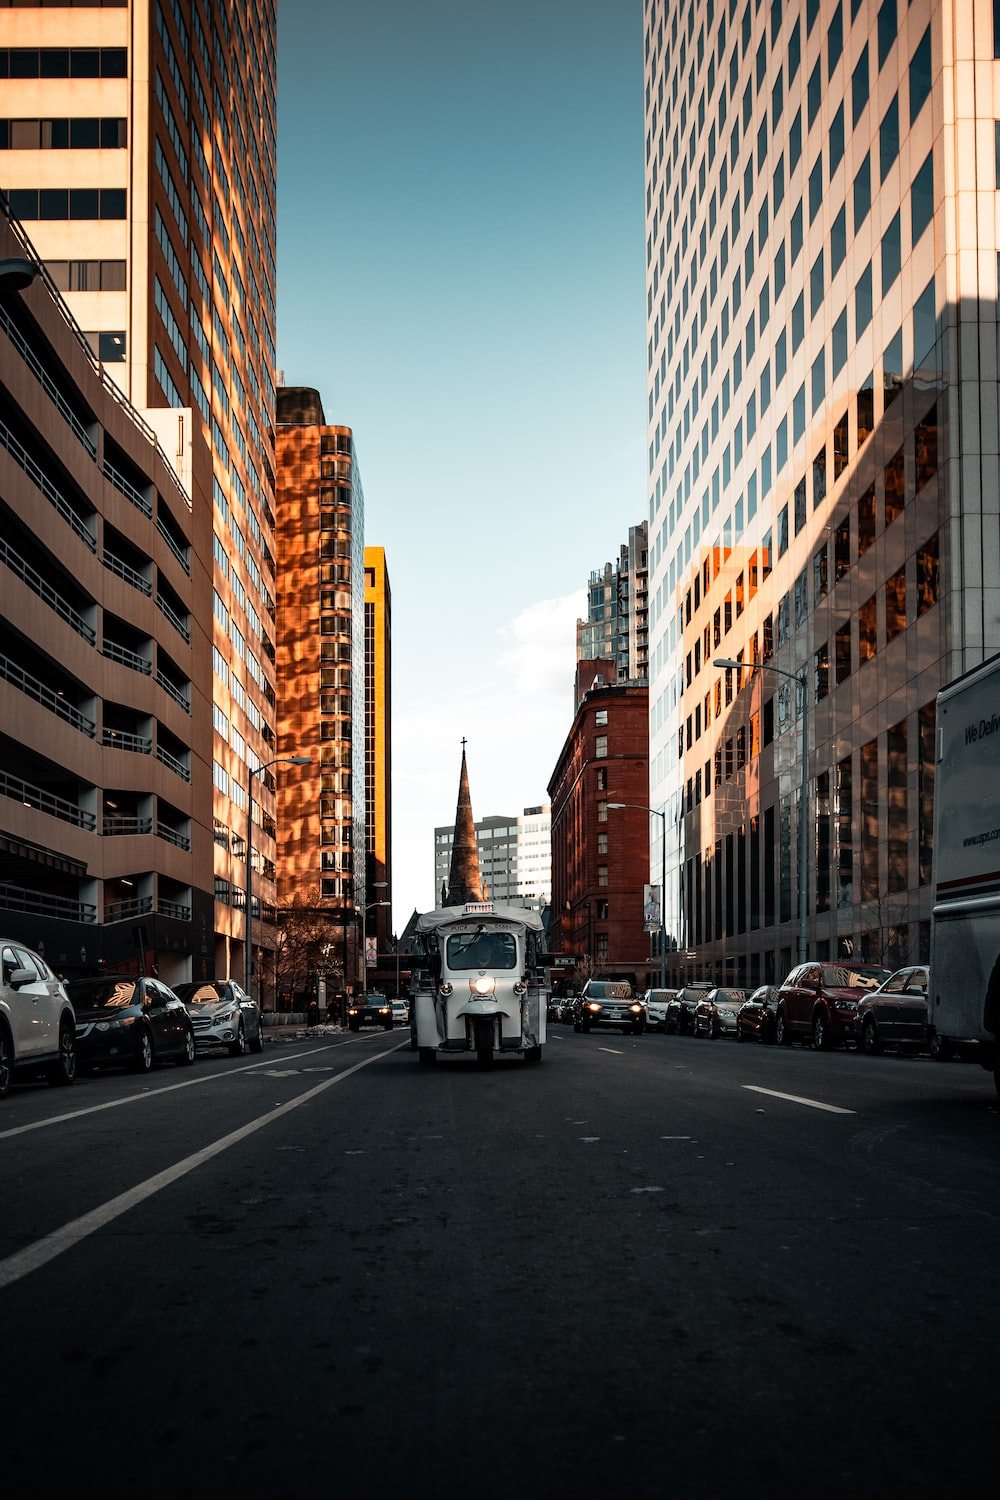 cars on road in between high rise buildings during daytime